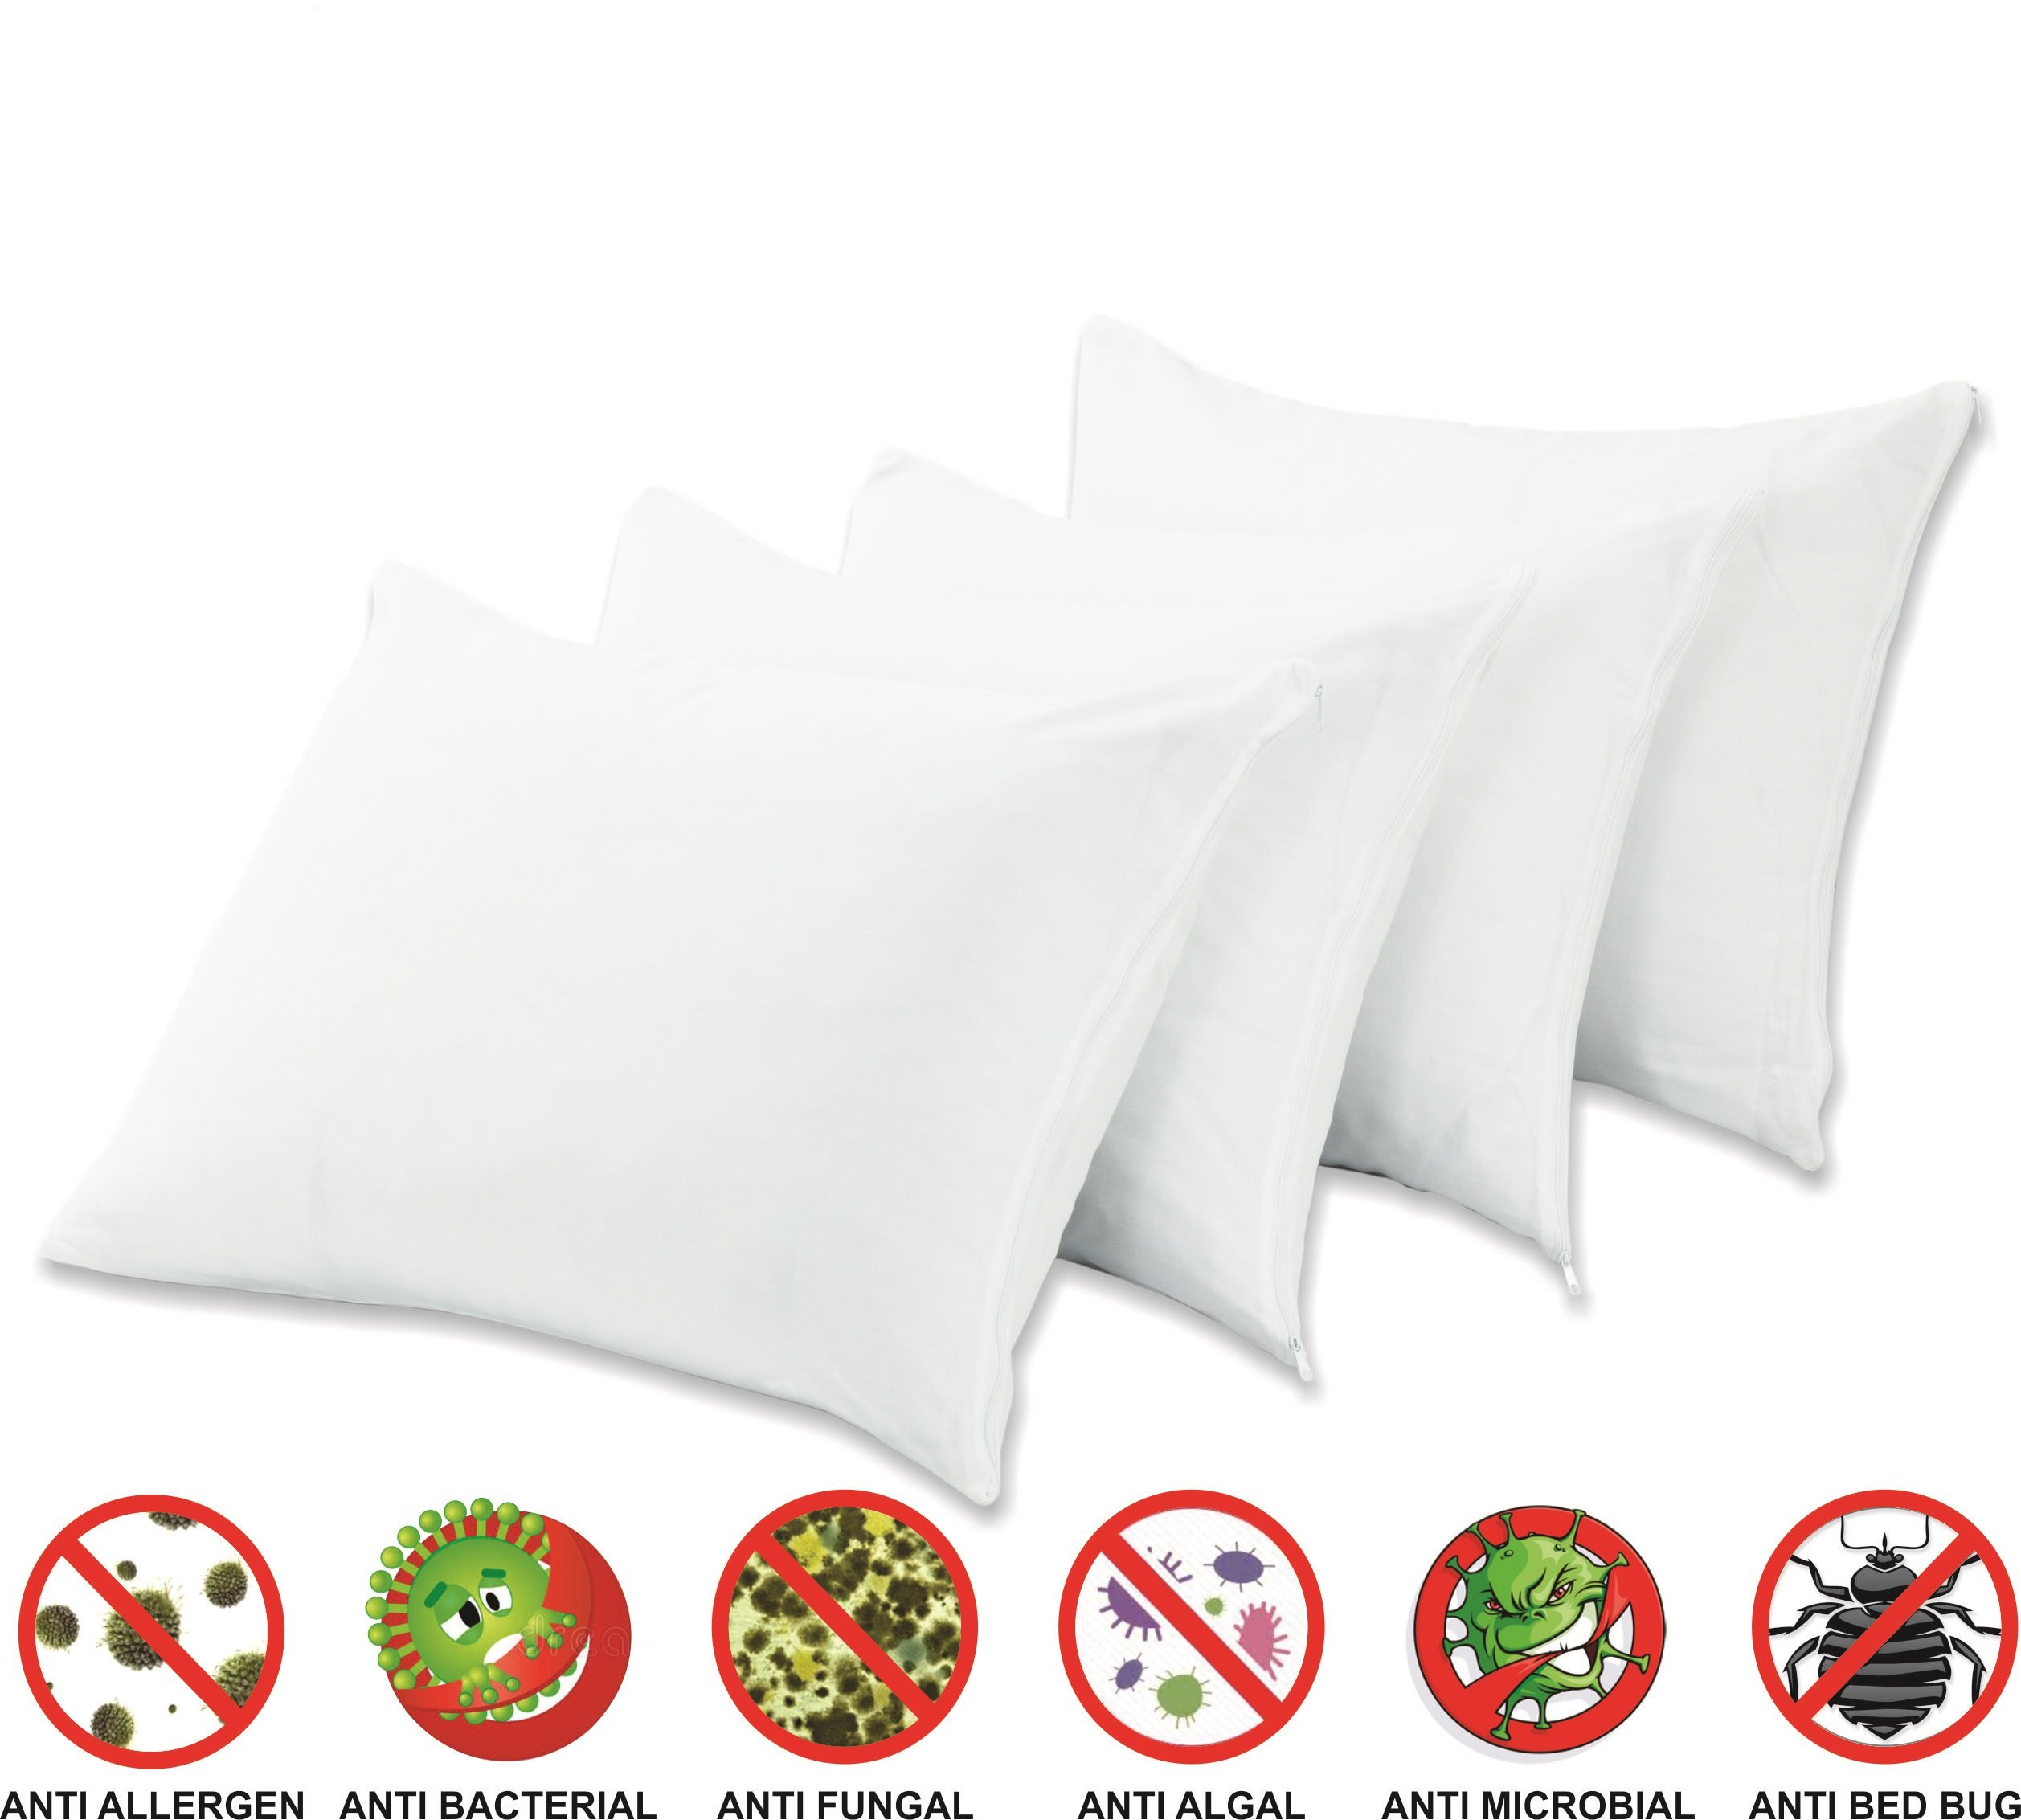 4 Pack Anti Allergy Bed Bug Dust Mite Proof Pillow Protectors Standard 20x26 Inches Premium 100% Cotton Non Noisy Zippered Proof Anti Bacterial Covers Breathable Non Crinky Luxury